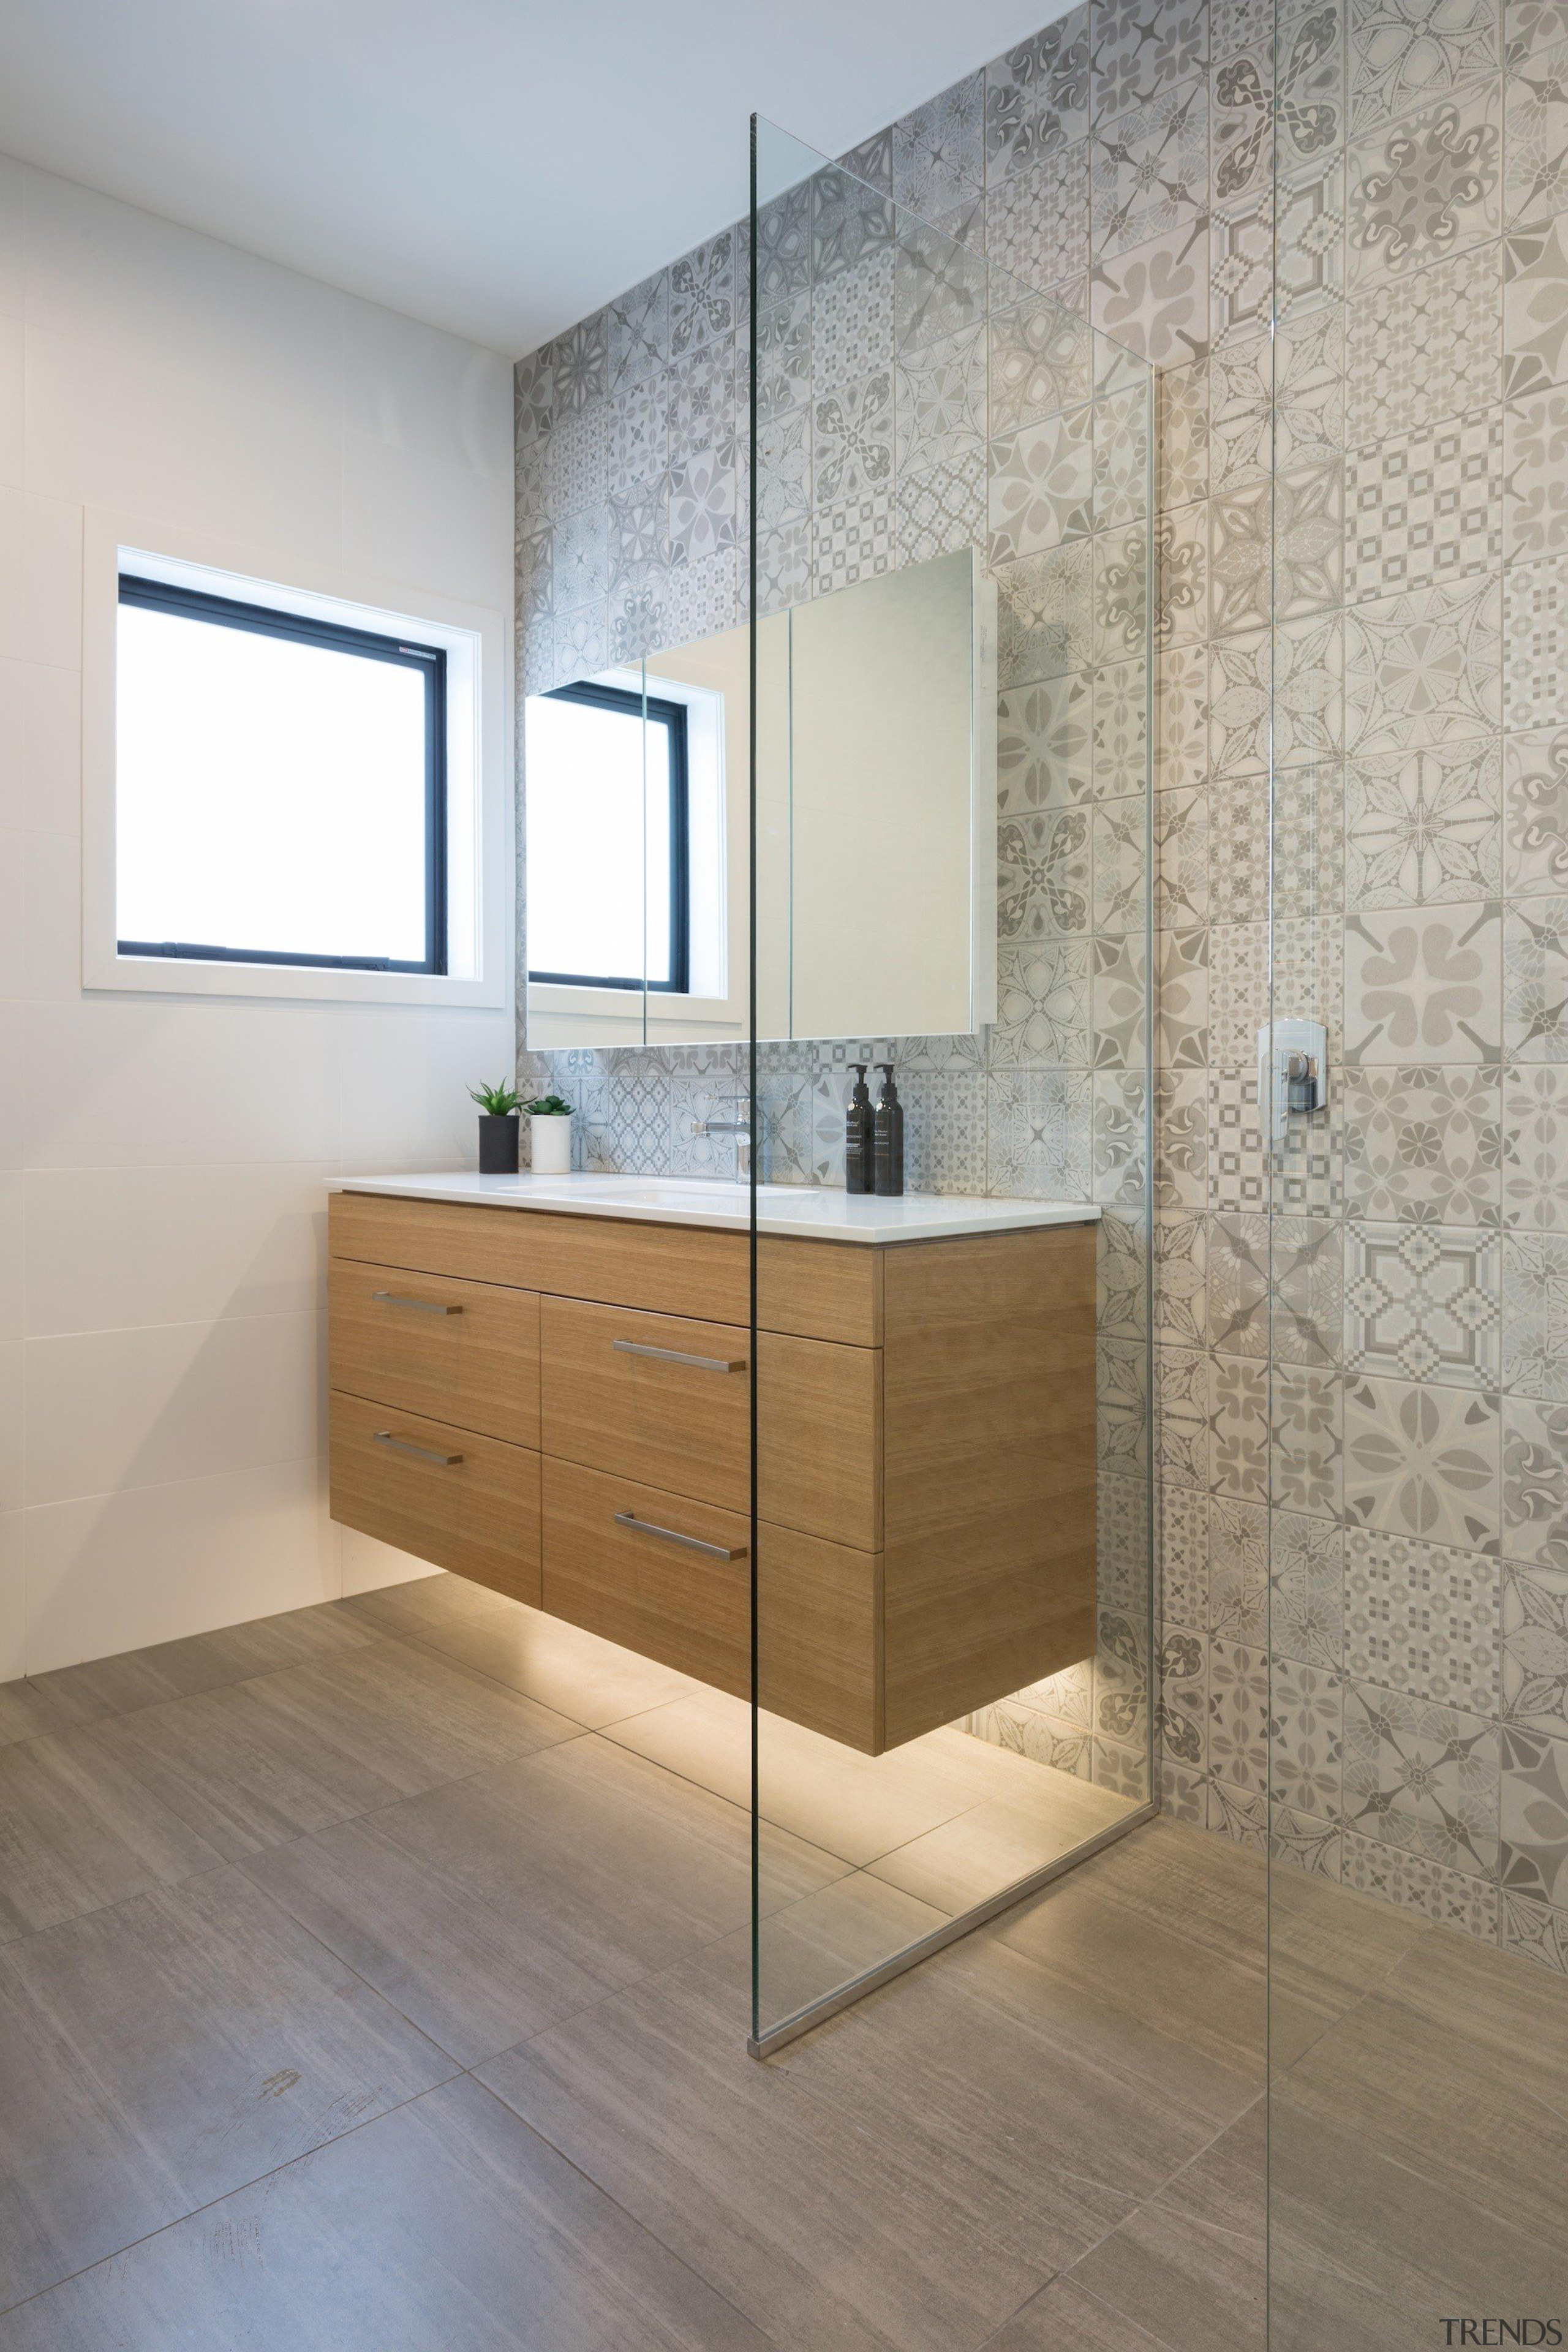 See more from Nicola Manning Design bathroom, bathroom accessory, bathroom cabinet, floor, flooring, interior design, laminate flooring, product design, room, sink, tile, wall, wood flooring, gray